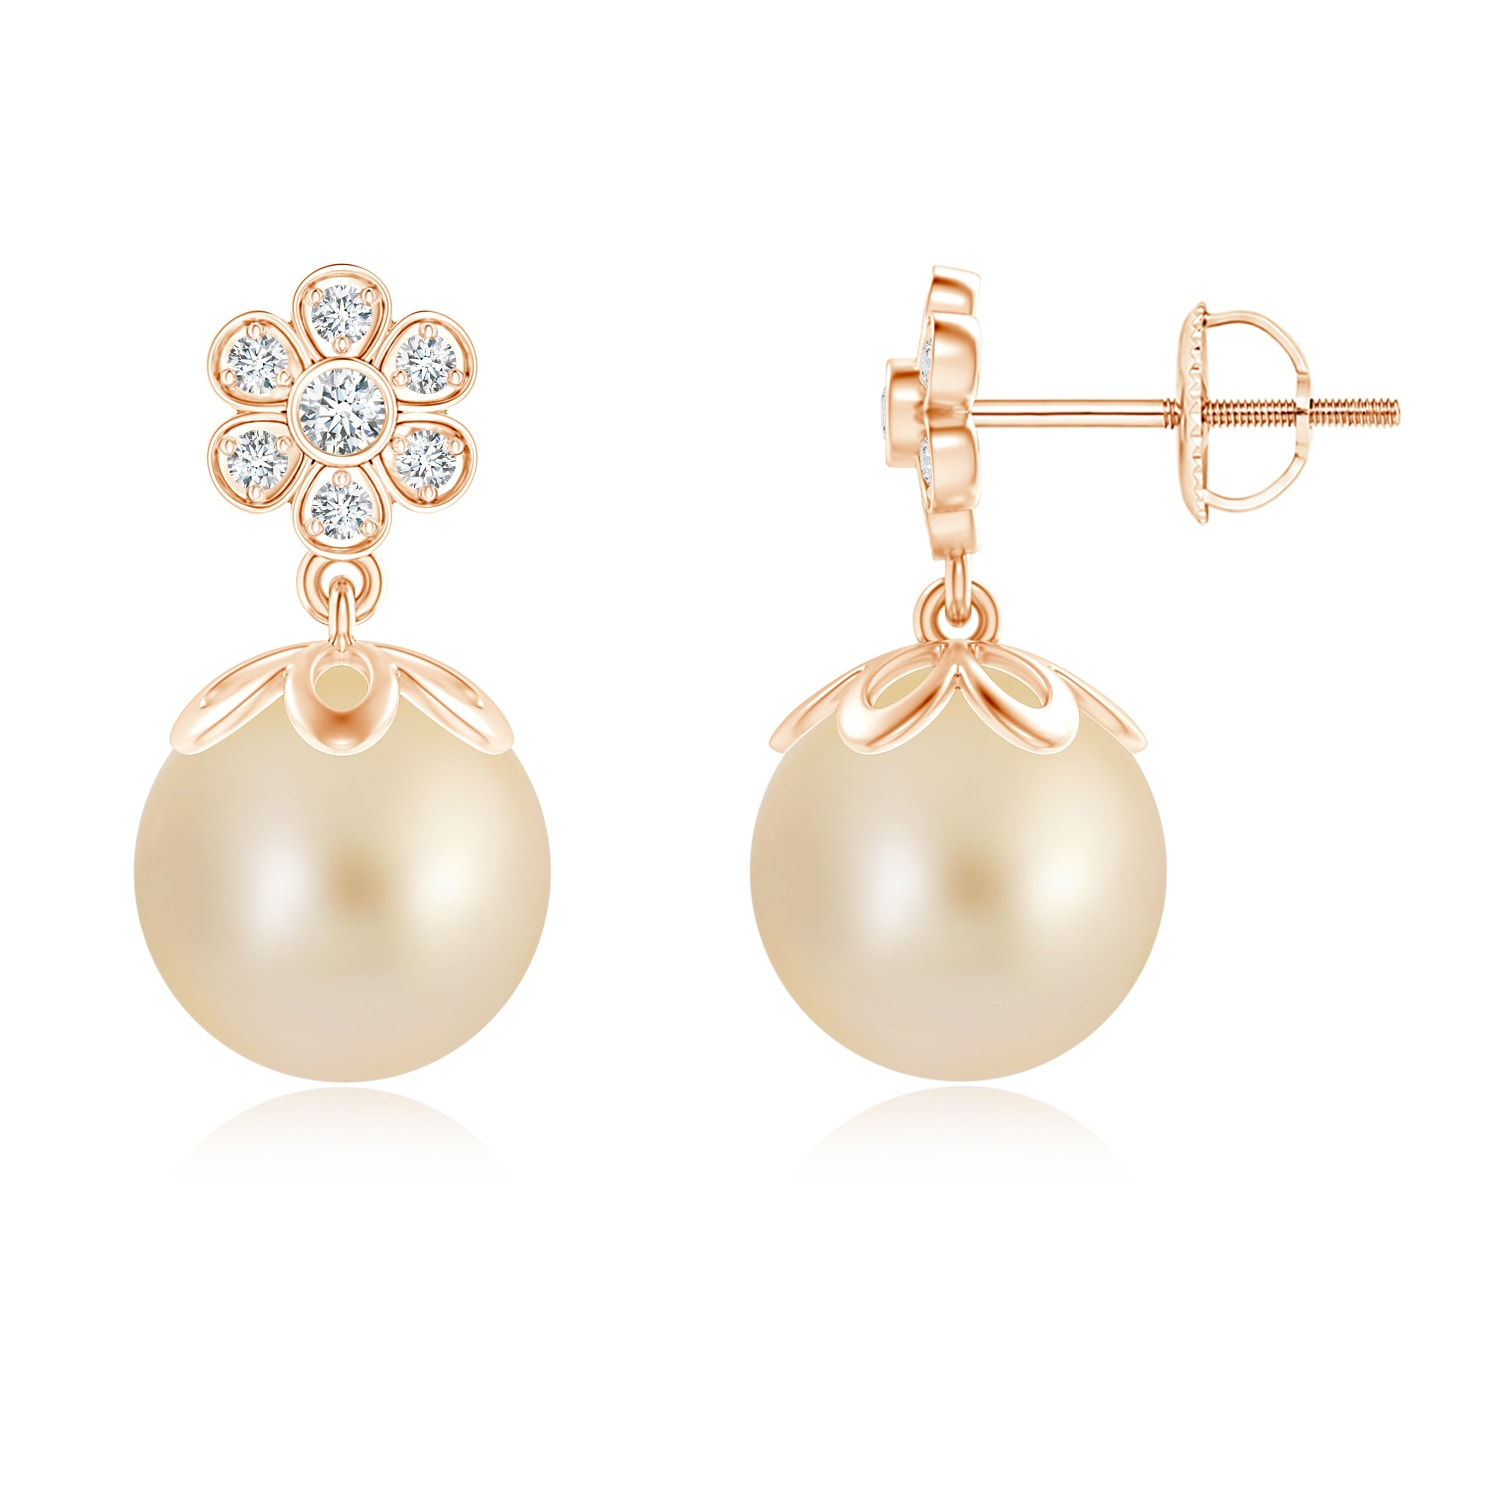 Cultured-Golden-South-Sea-Pearl-Floral-Drop-Earrings-14k-Yellow-Gold-Silver